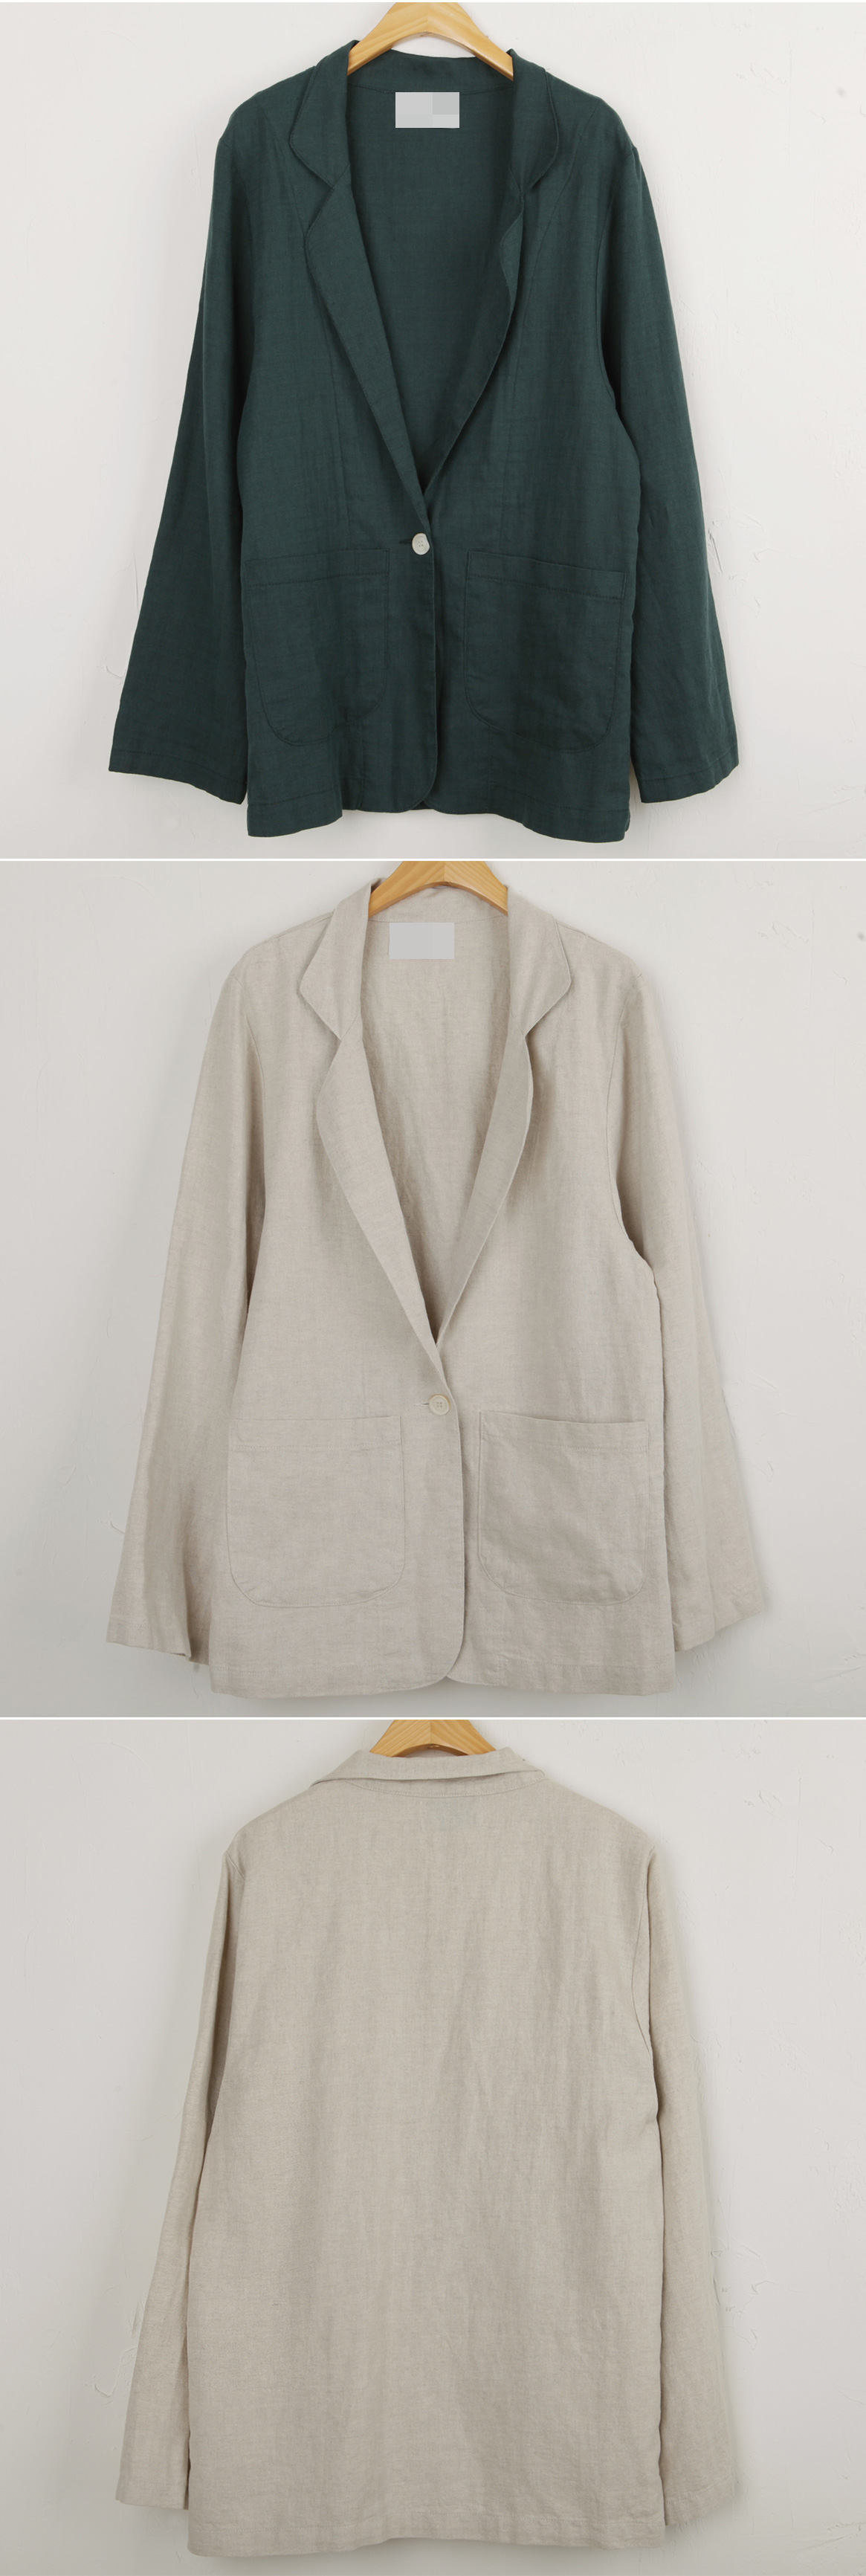 Herringbone Linen Washing Jacket (2 colors)